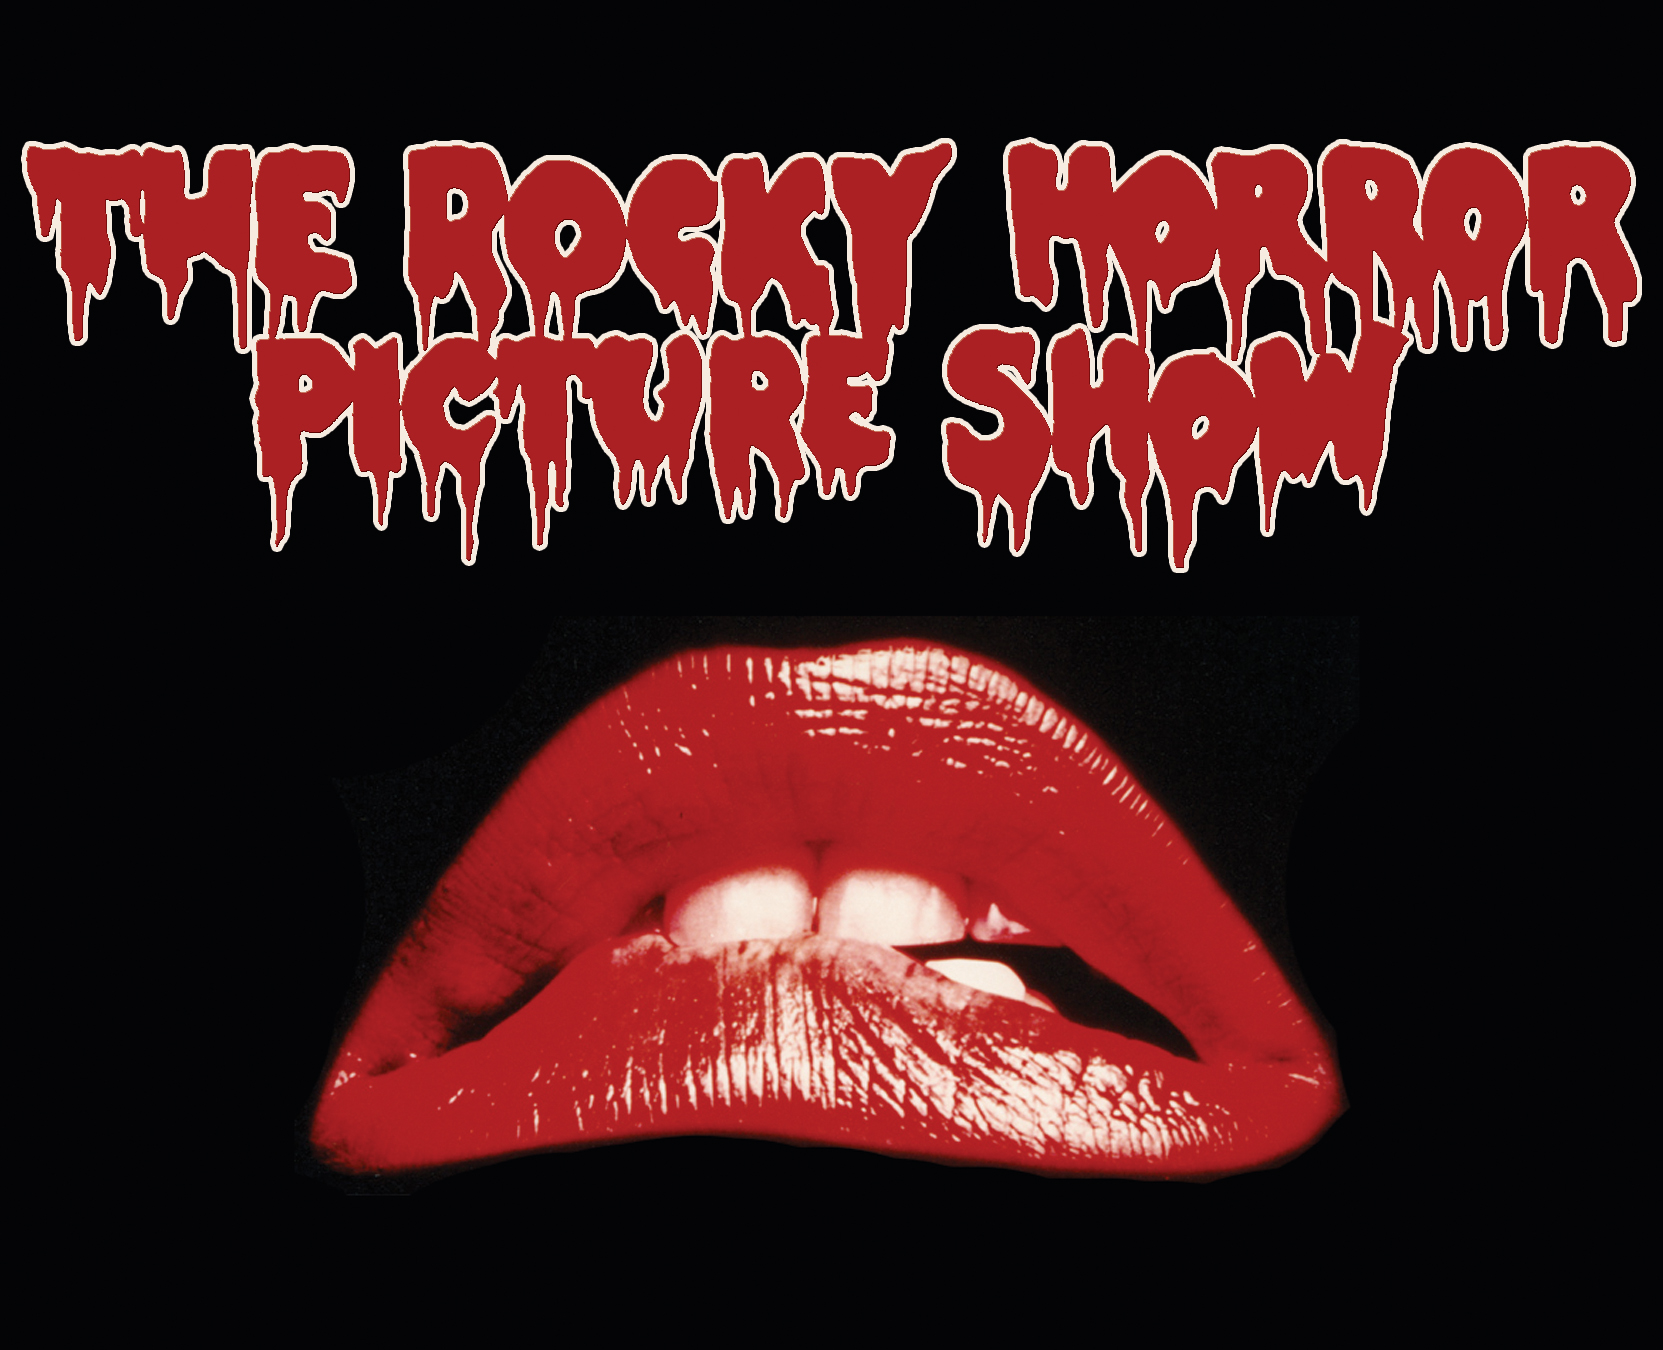 rocky-horror-picture-show-lips.jpg